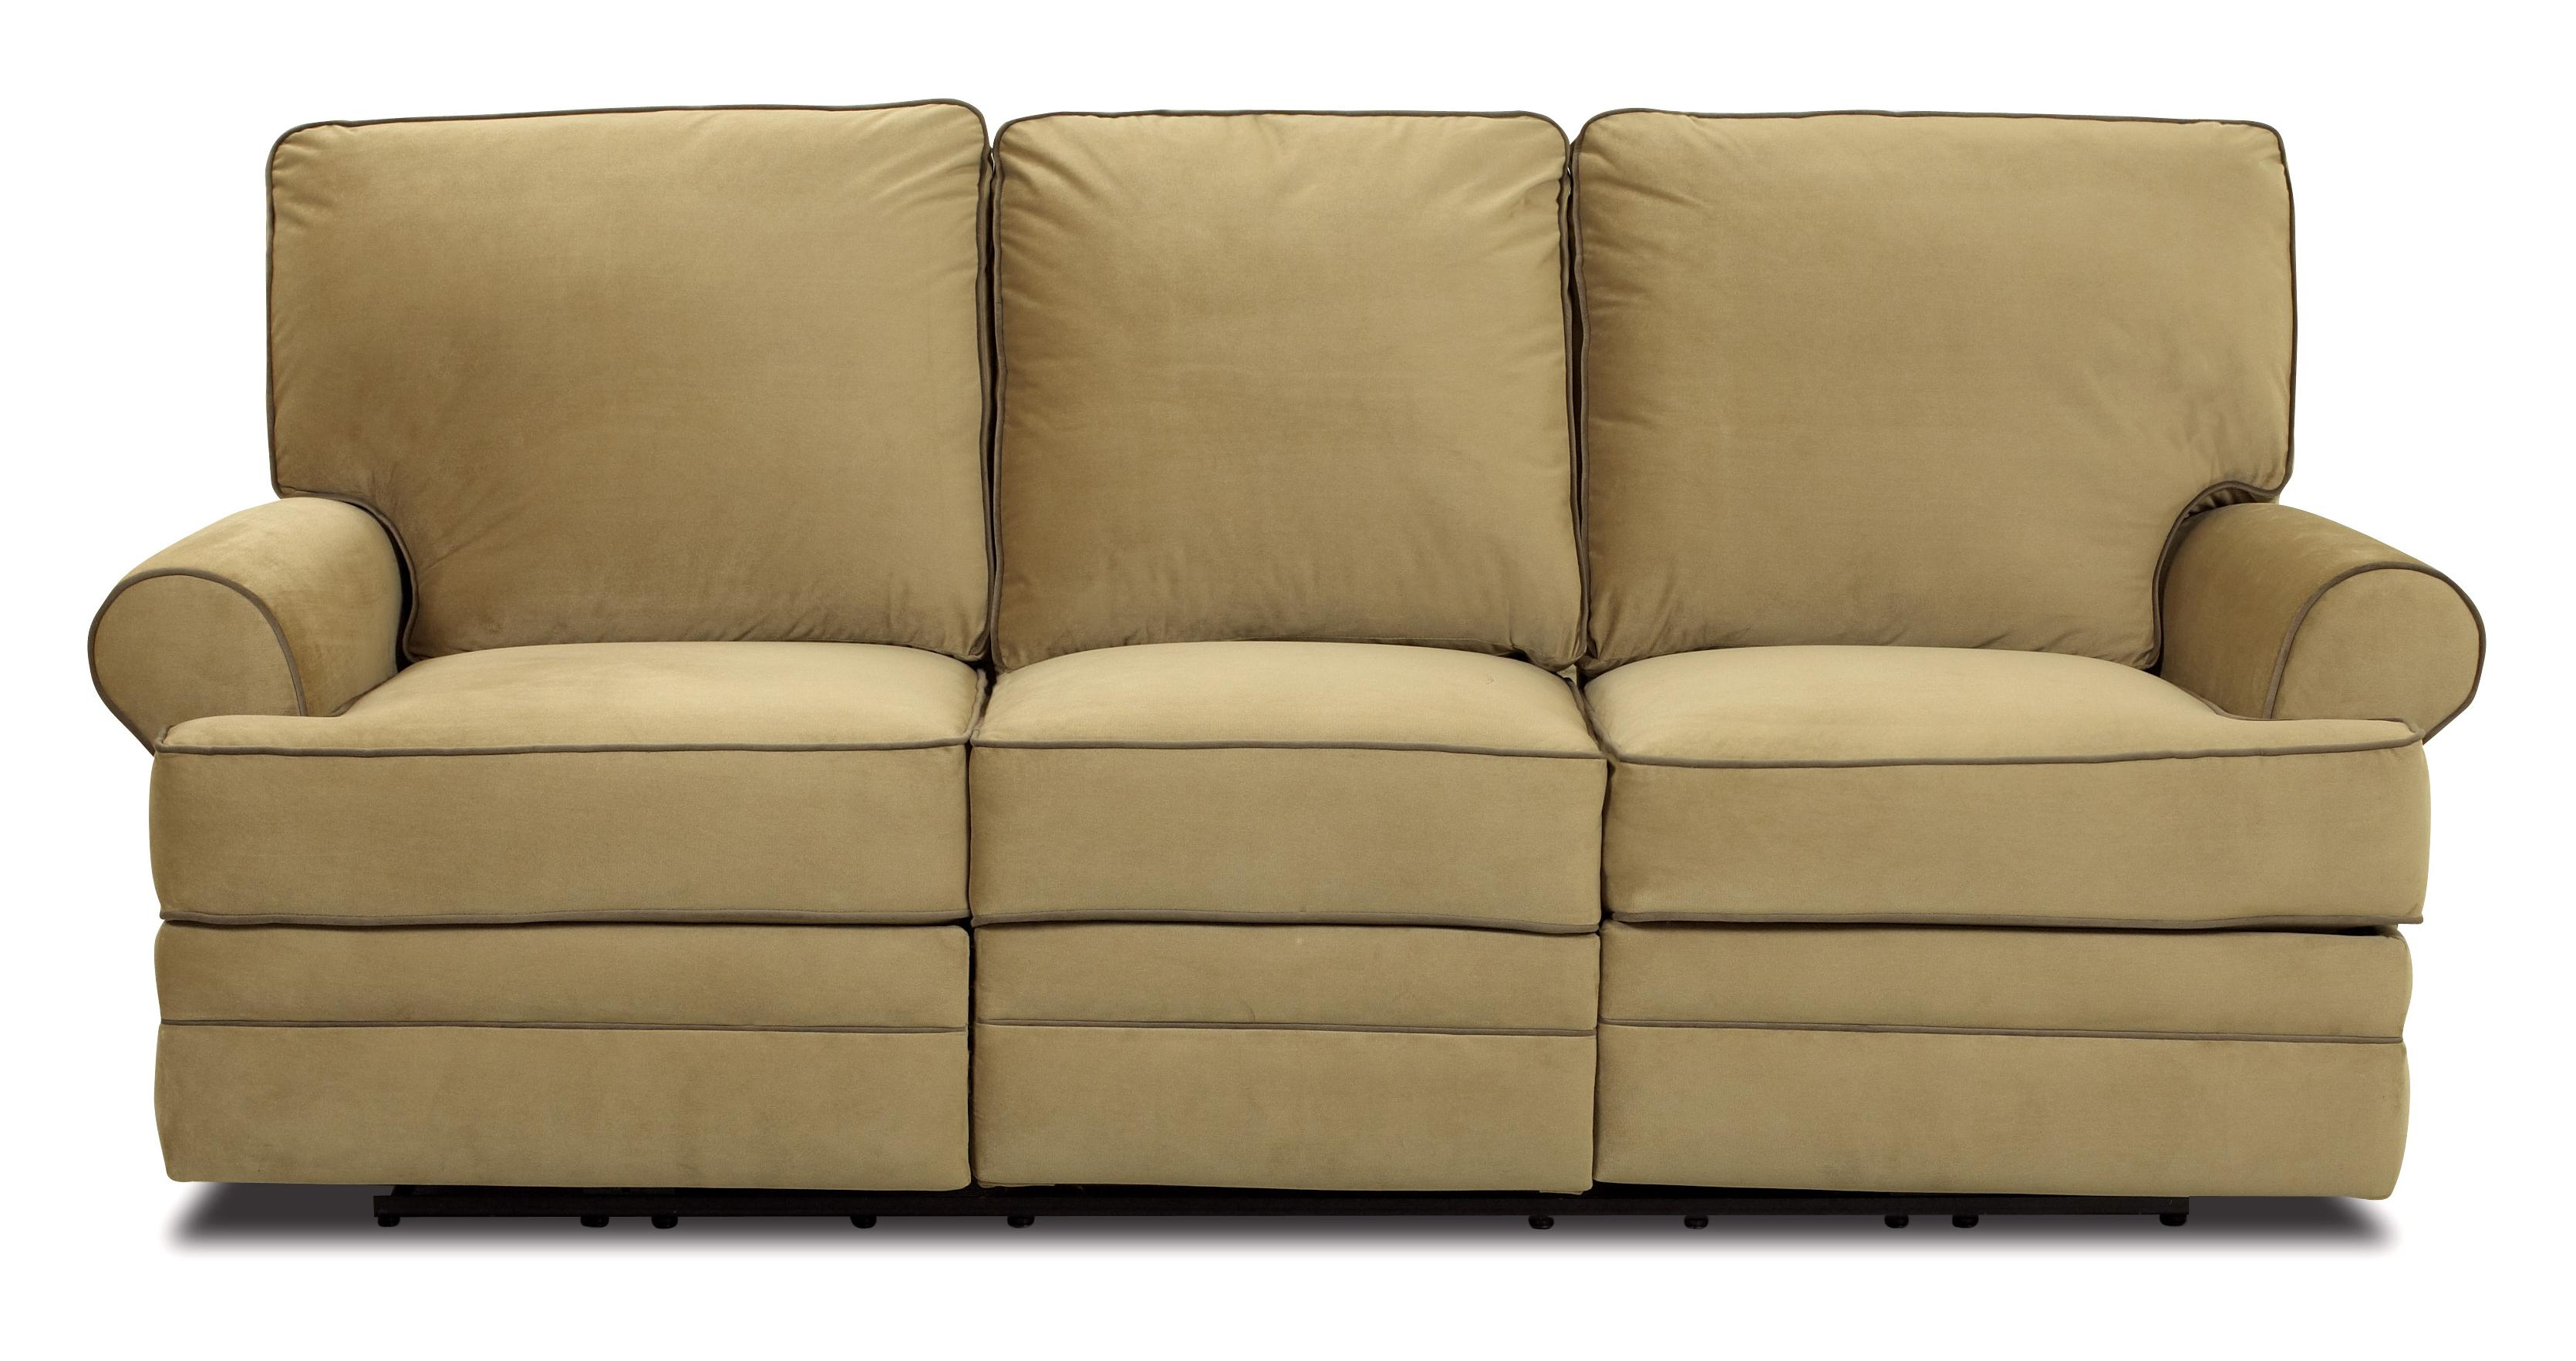 sofa reclinable 3 cuerpos ripley discounted power dual reclining by klaussner wolf and gardiner